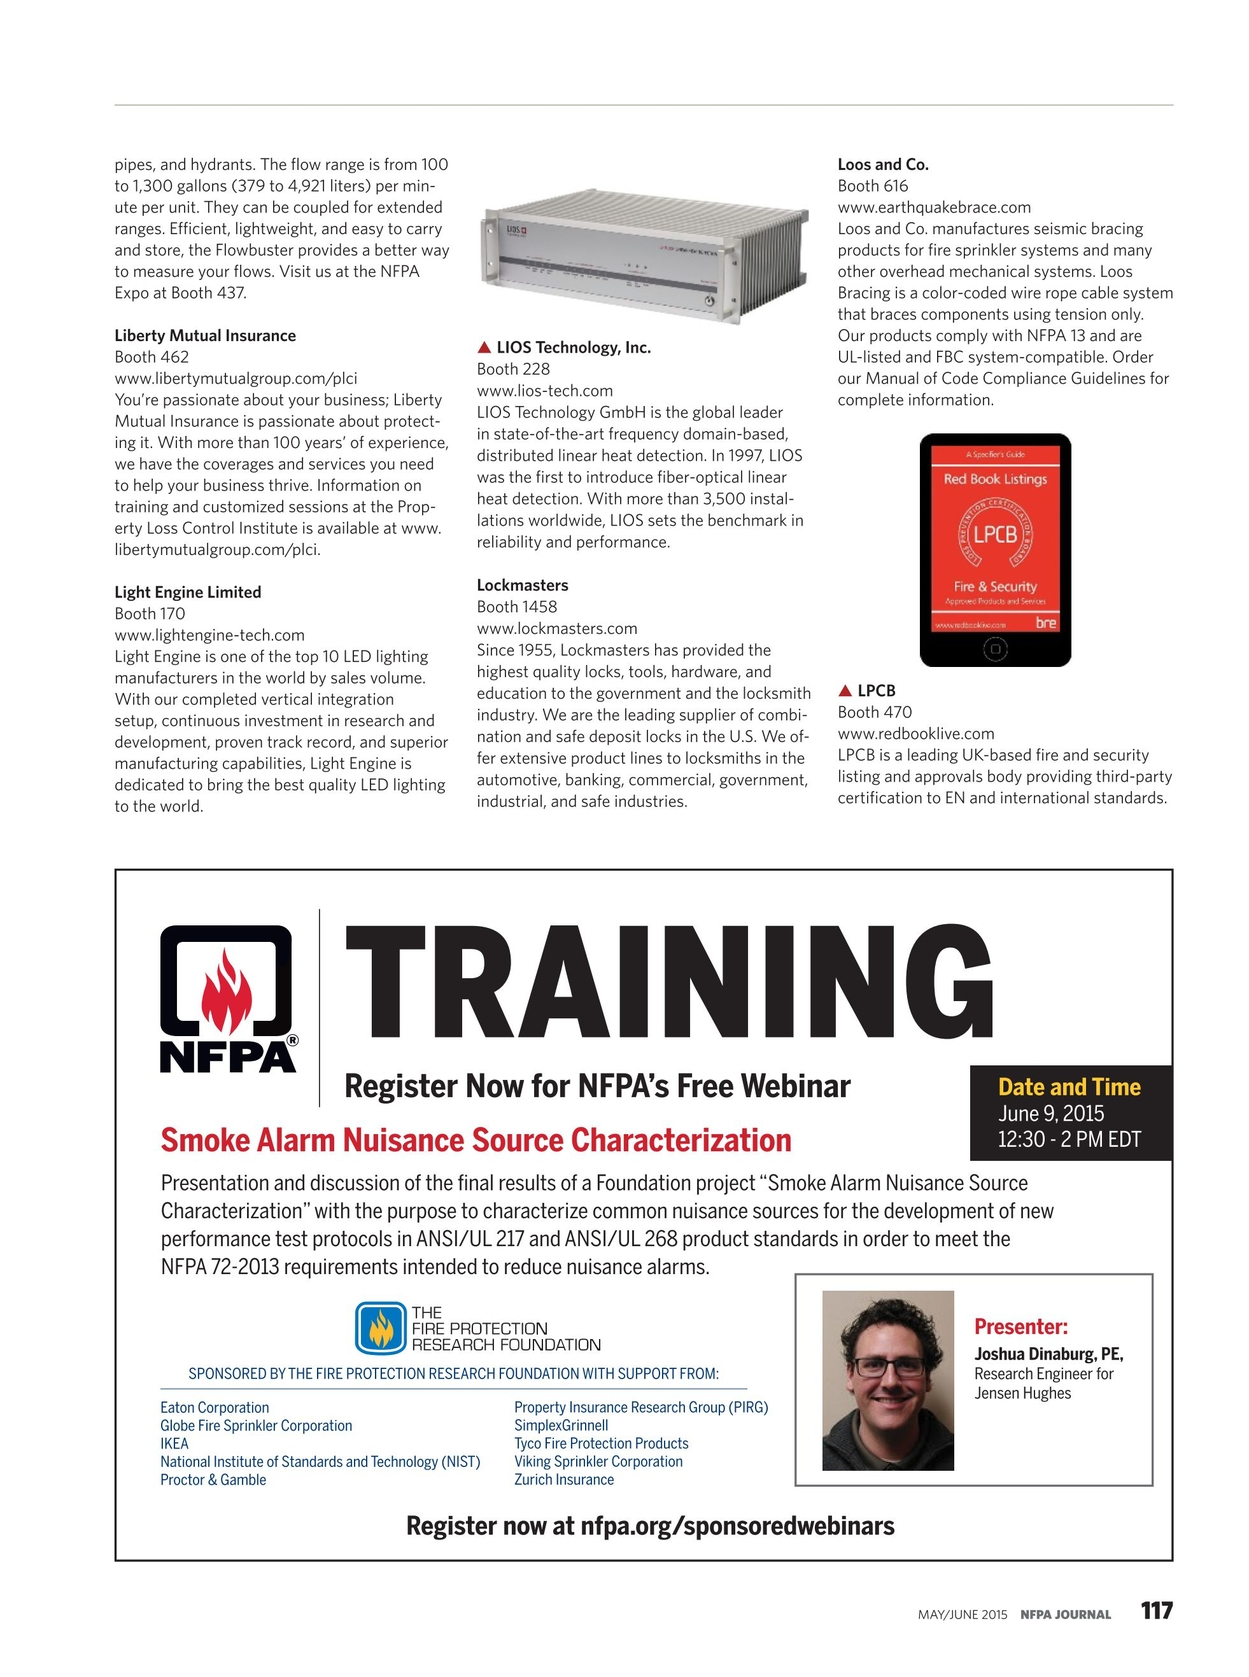 NFPA Journal - May/June 2015 [116 - 117]